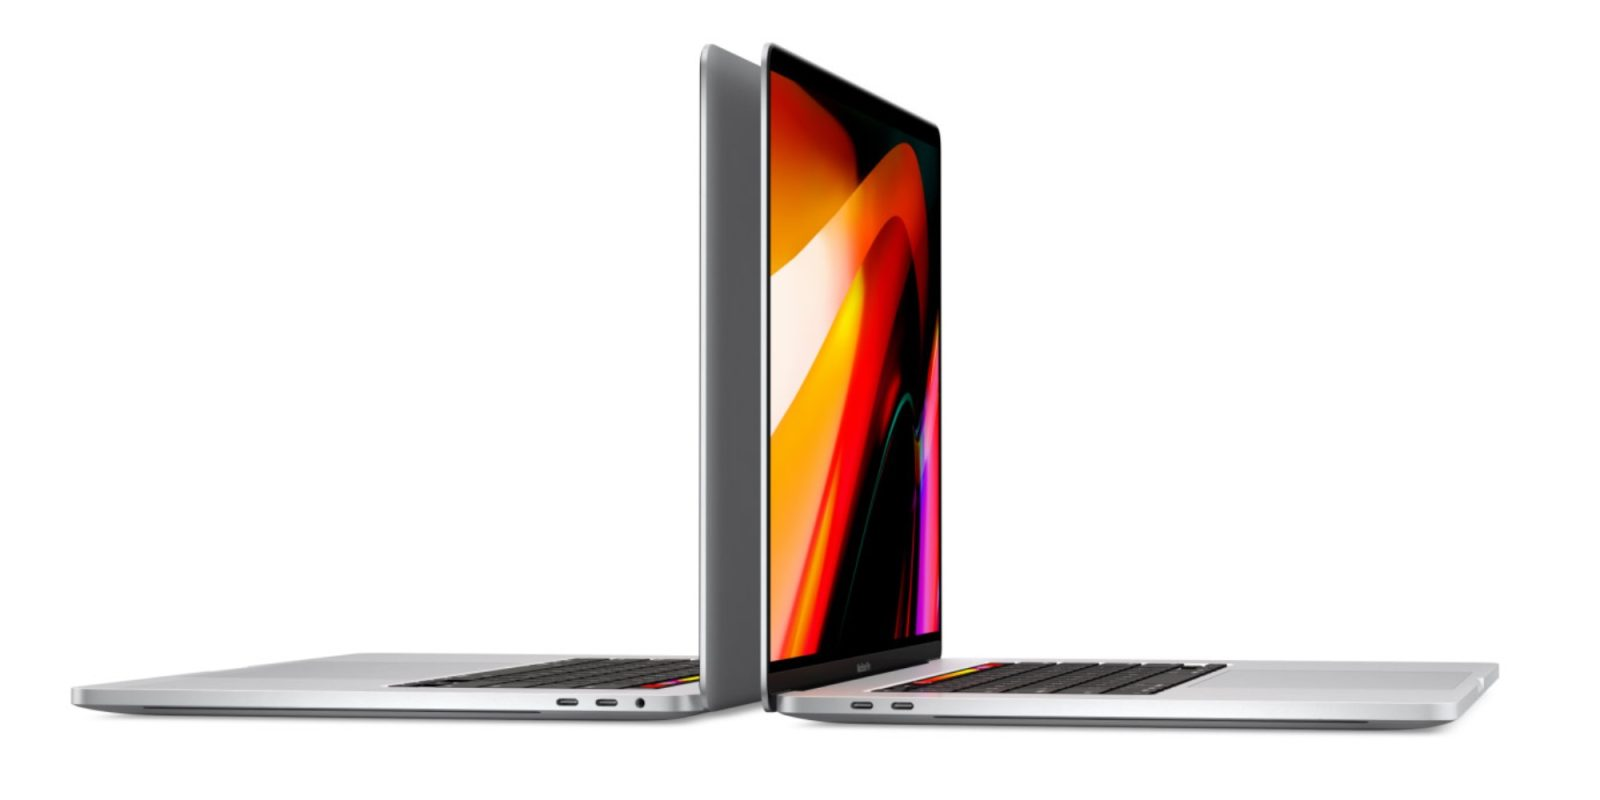 16 Inch Macbook Pro Includes Exclusive Colorful Wallpapers